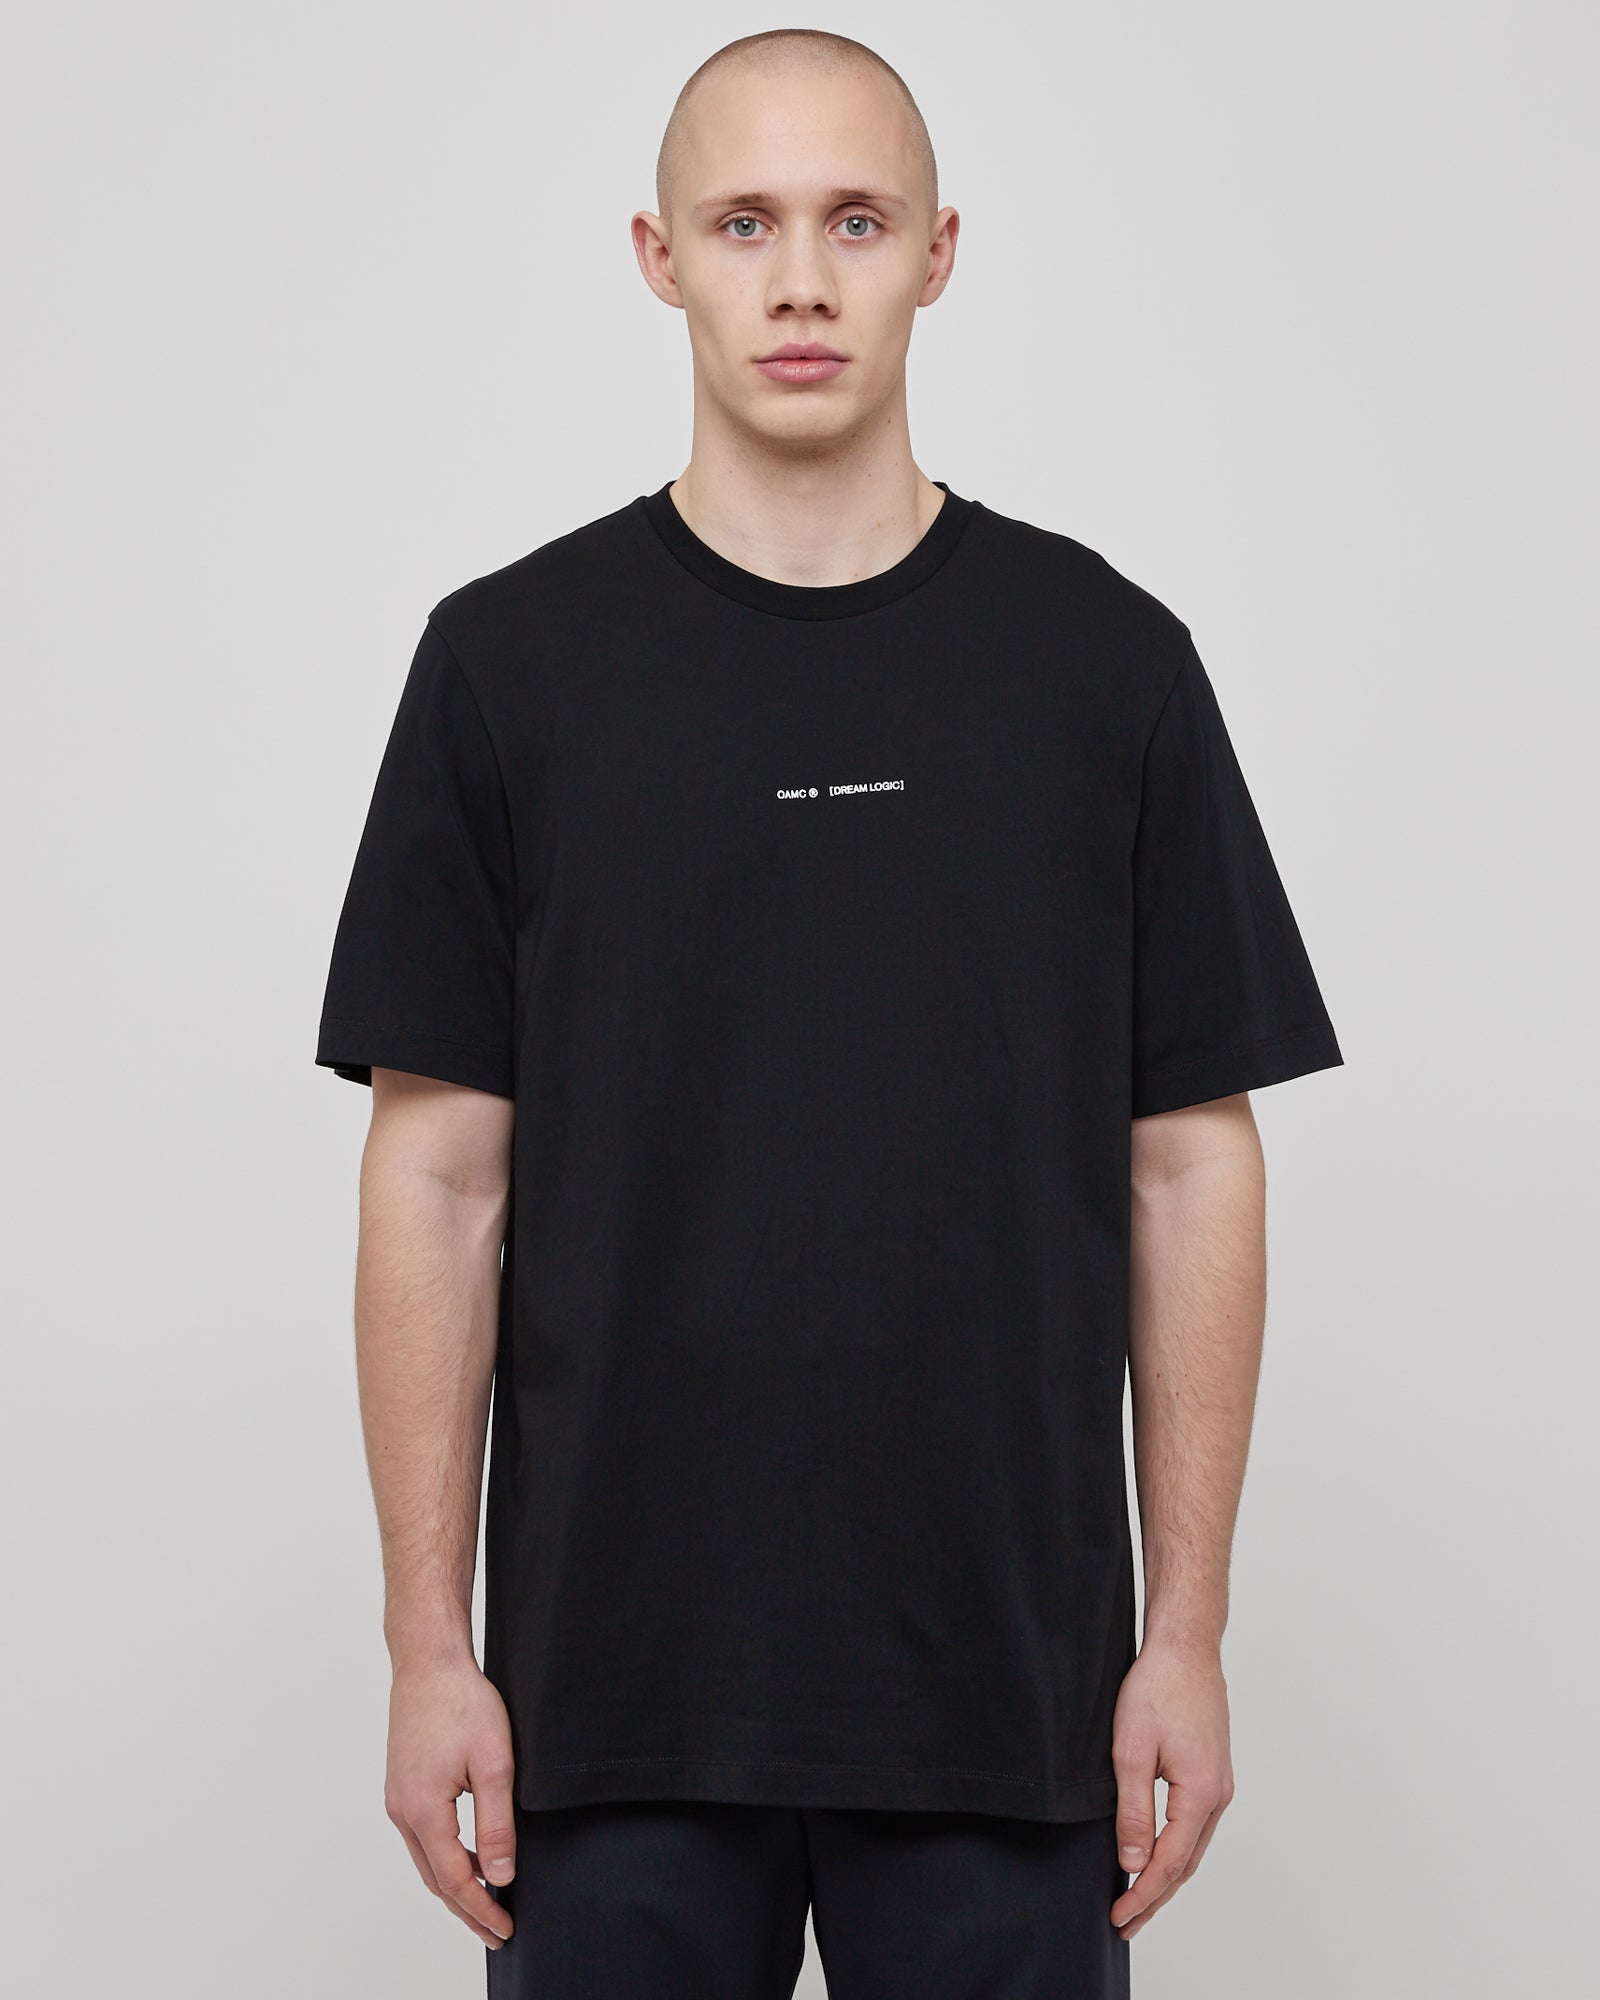 Traum T-Shirt in Black